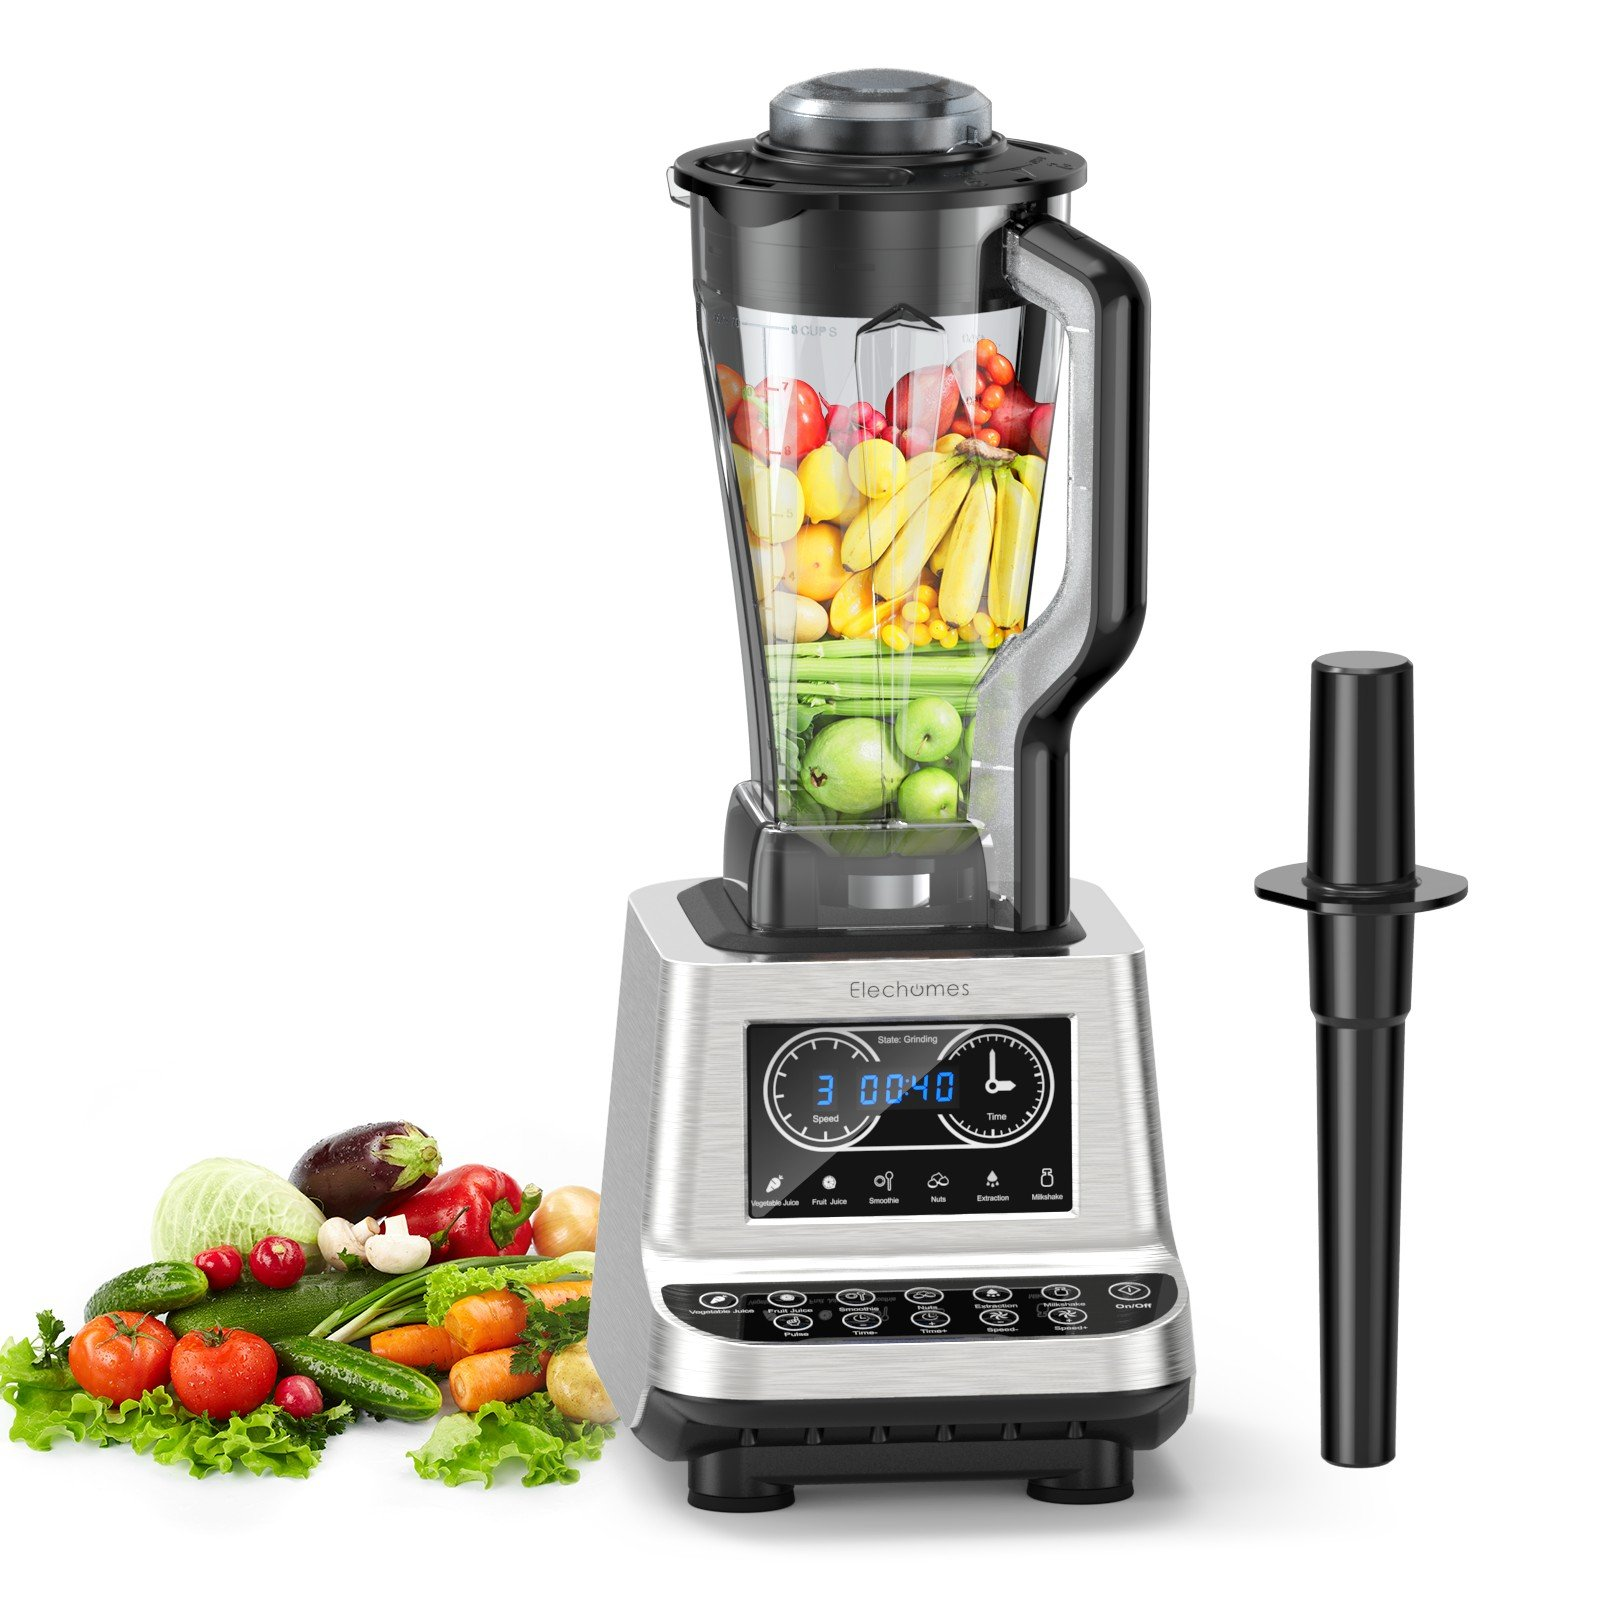 High Speed Blender - Elechomes CHS2001 1600W Professional Commercial Smoothie Blender, 30000RPM Heavy Duty Food Processor for Ice, Soup, Mincemeat, Nut Butter with Large Tritan Pitcher by Elechomes